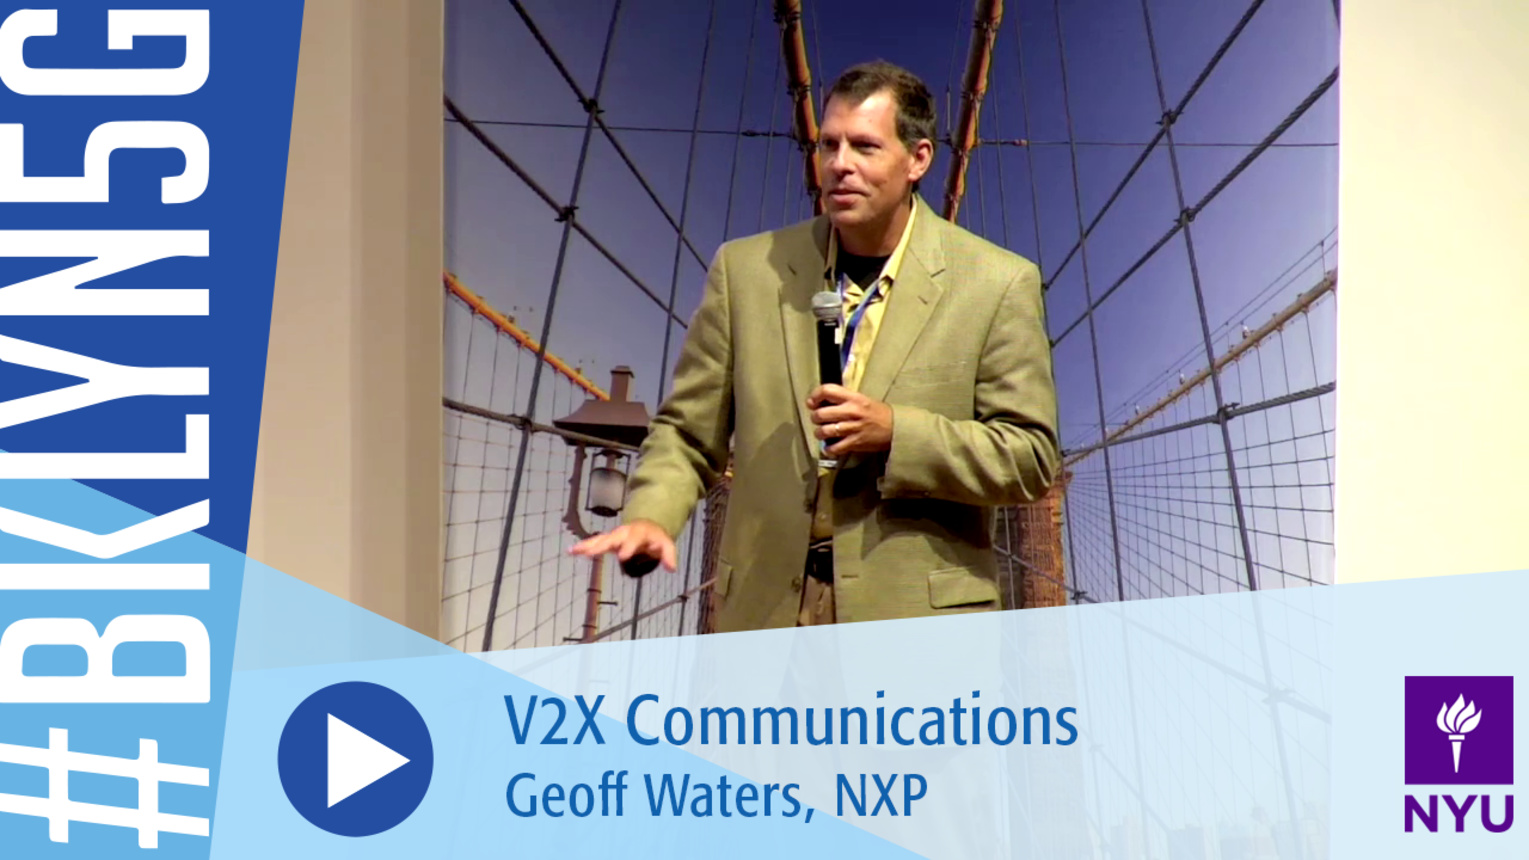 Brooklyn 5G 2016: Geoff Waters on V2X Communications